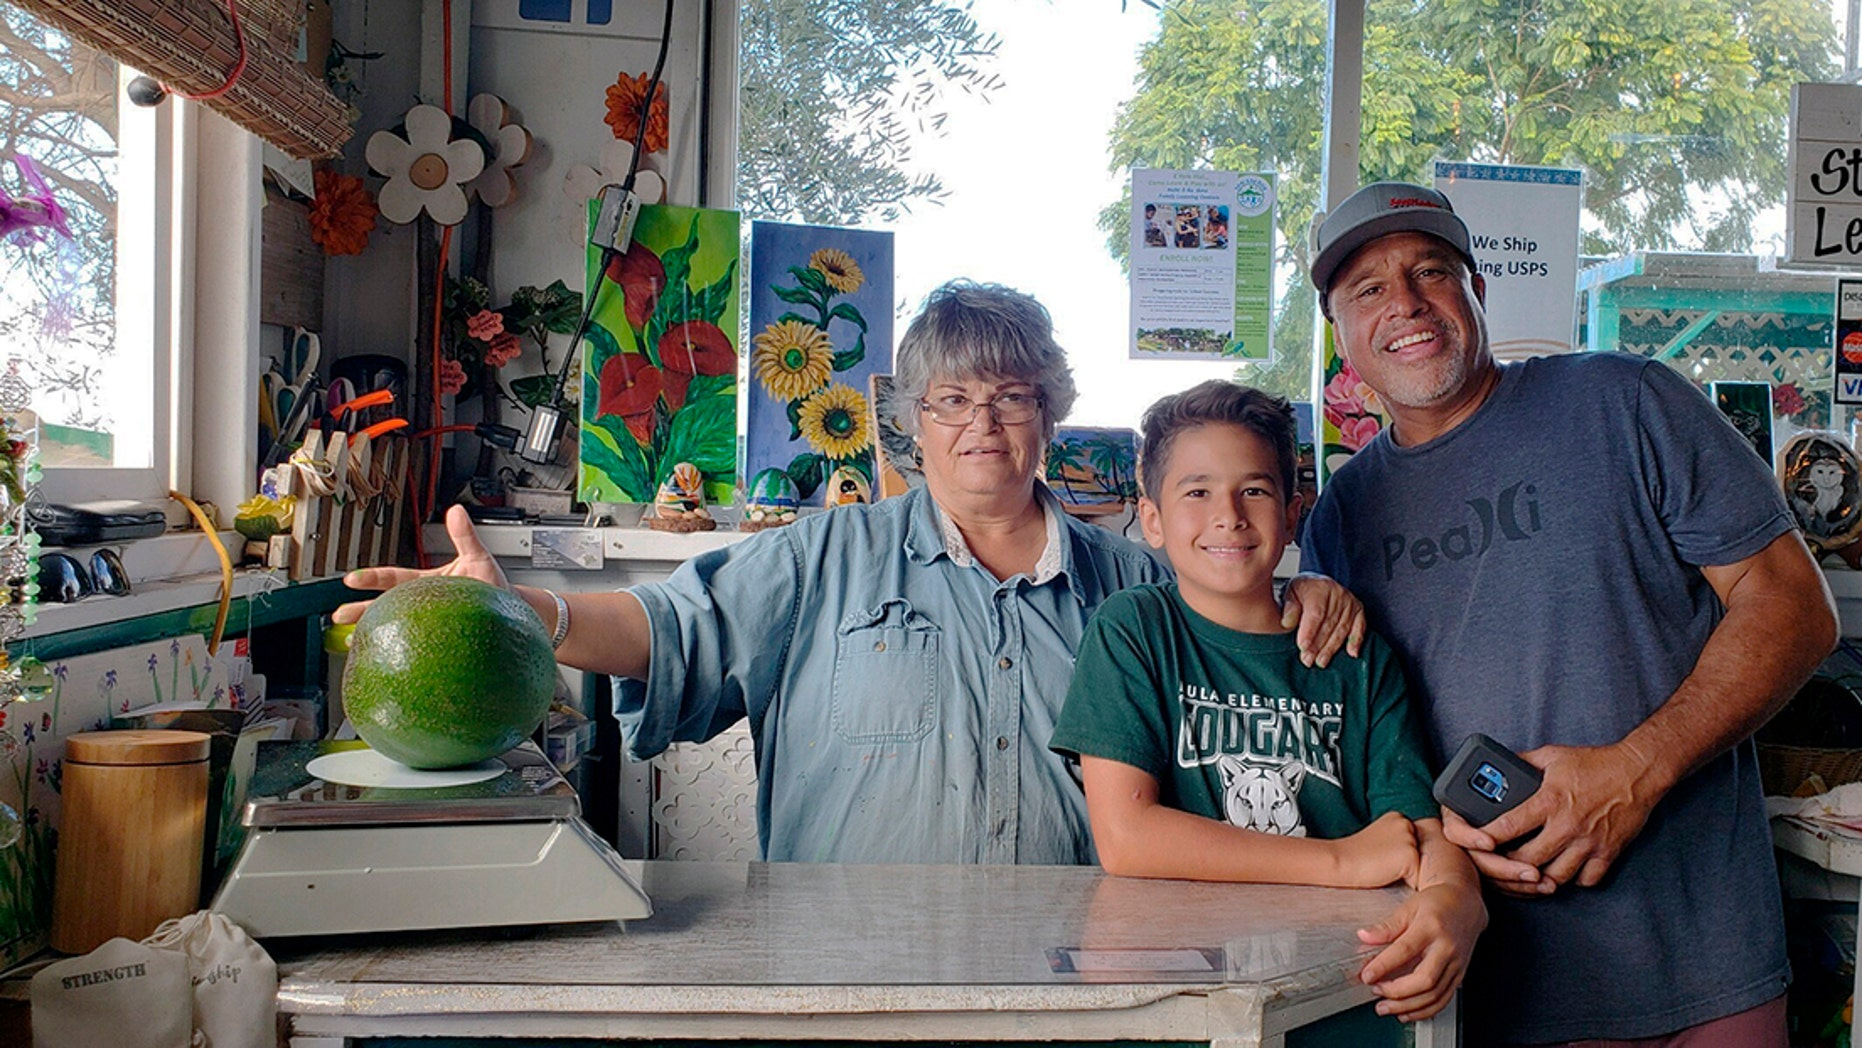 The Pokini family's avocado tree is more than 10 years old and 20 feet (6.1 meters) tall. Mark Pokini planted it when his son was born, using a seed from his brother-in-law's tree on Oahu island, he said.